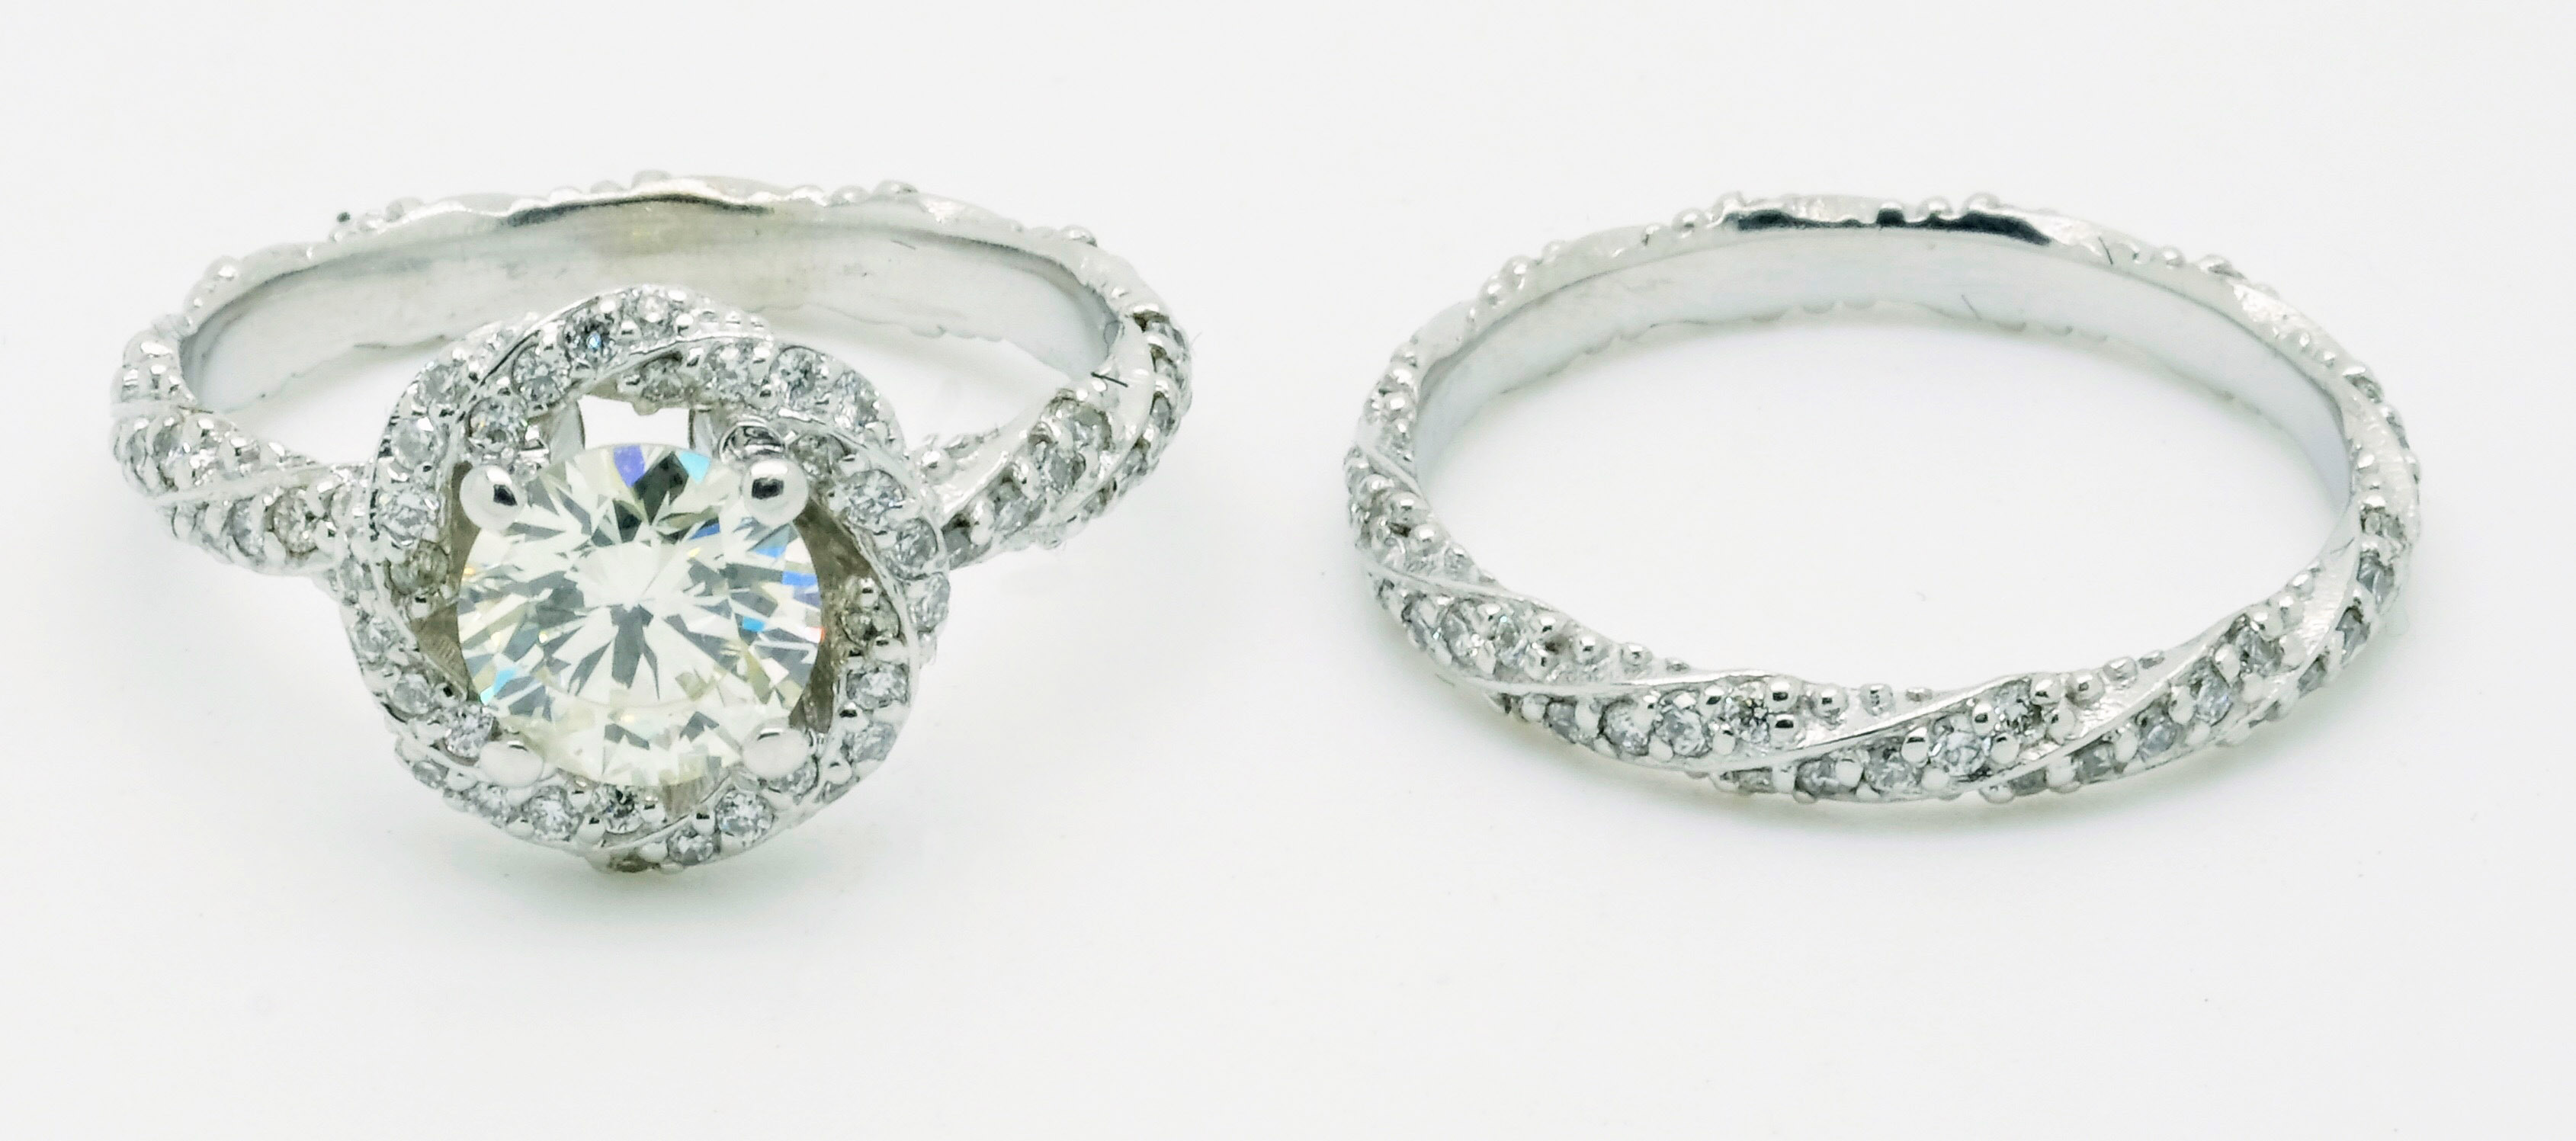 Why Custom Engagement Rings Are Best - Jonathan Stein